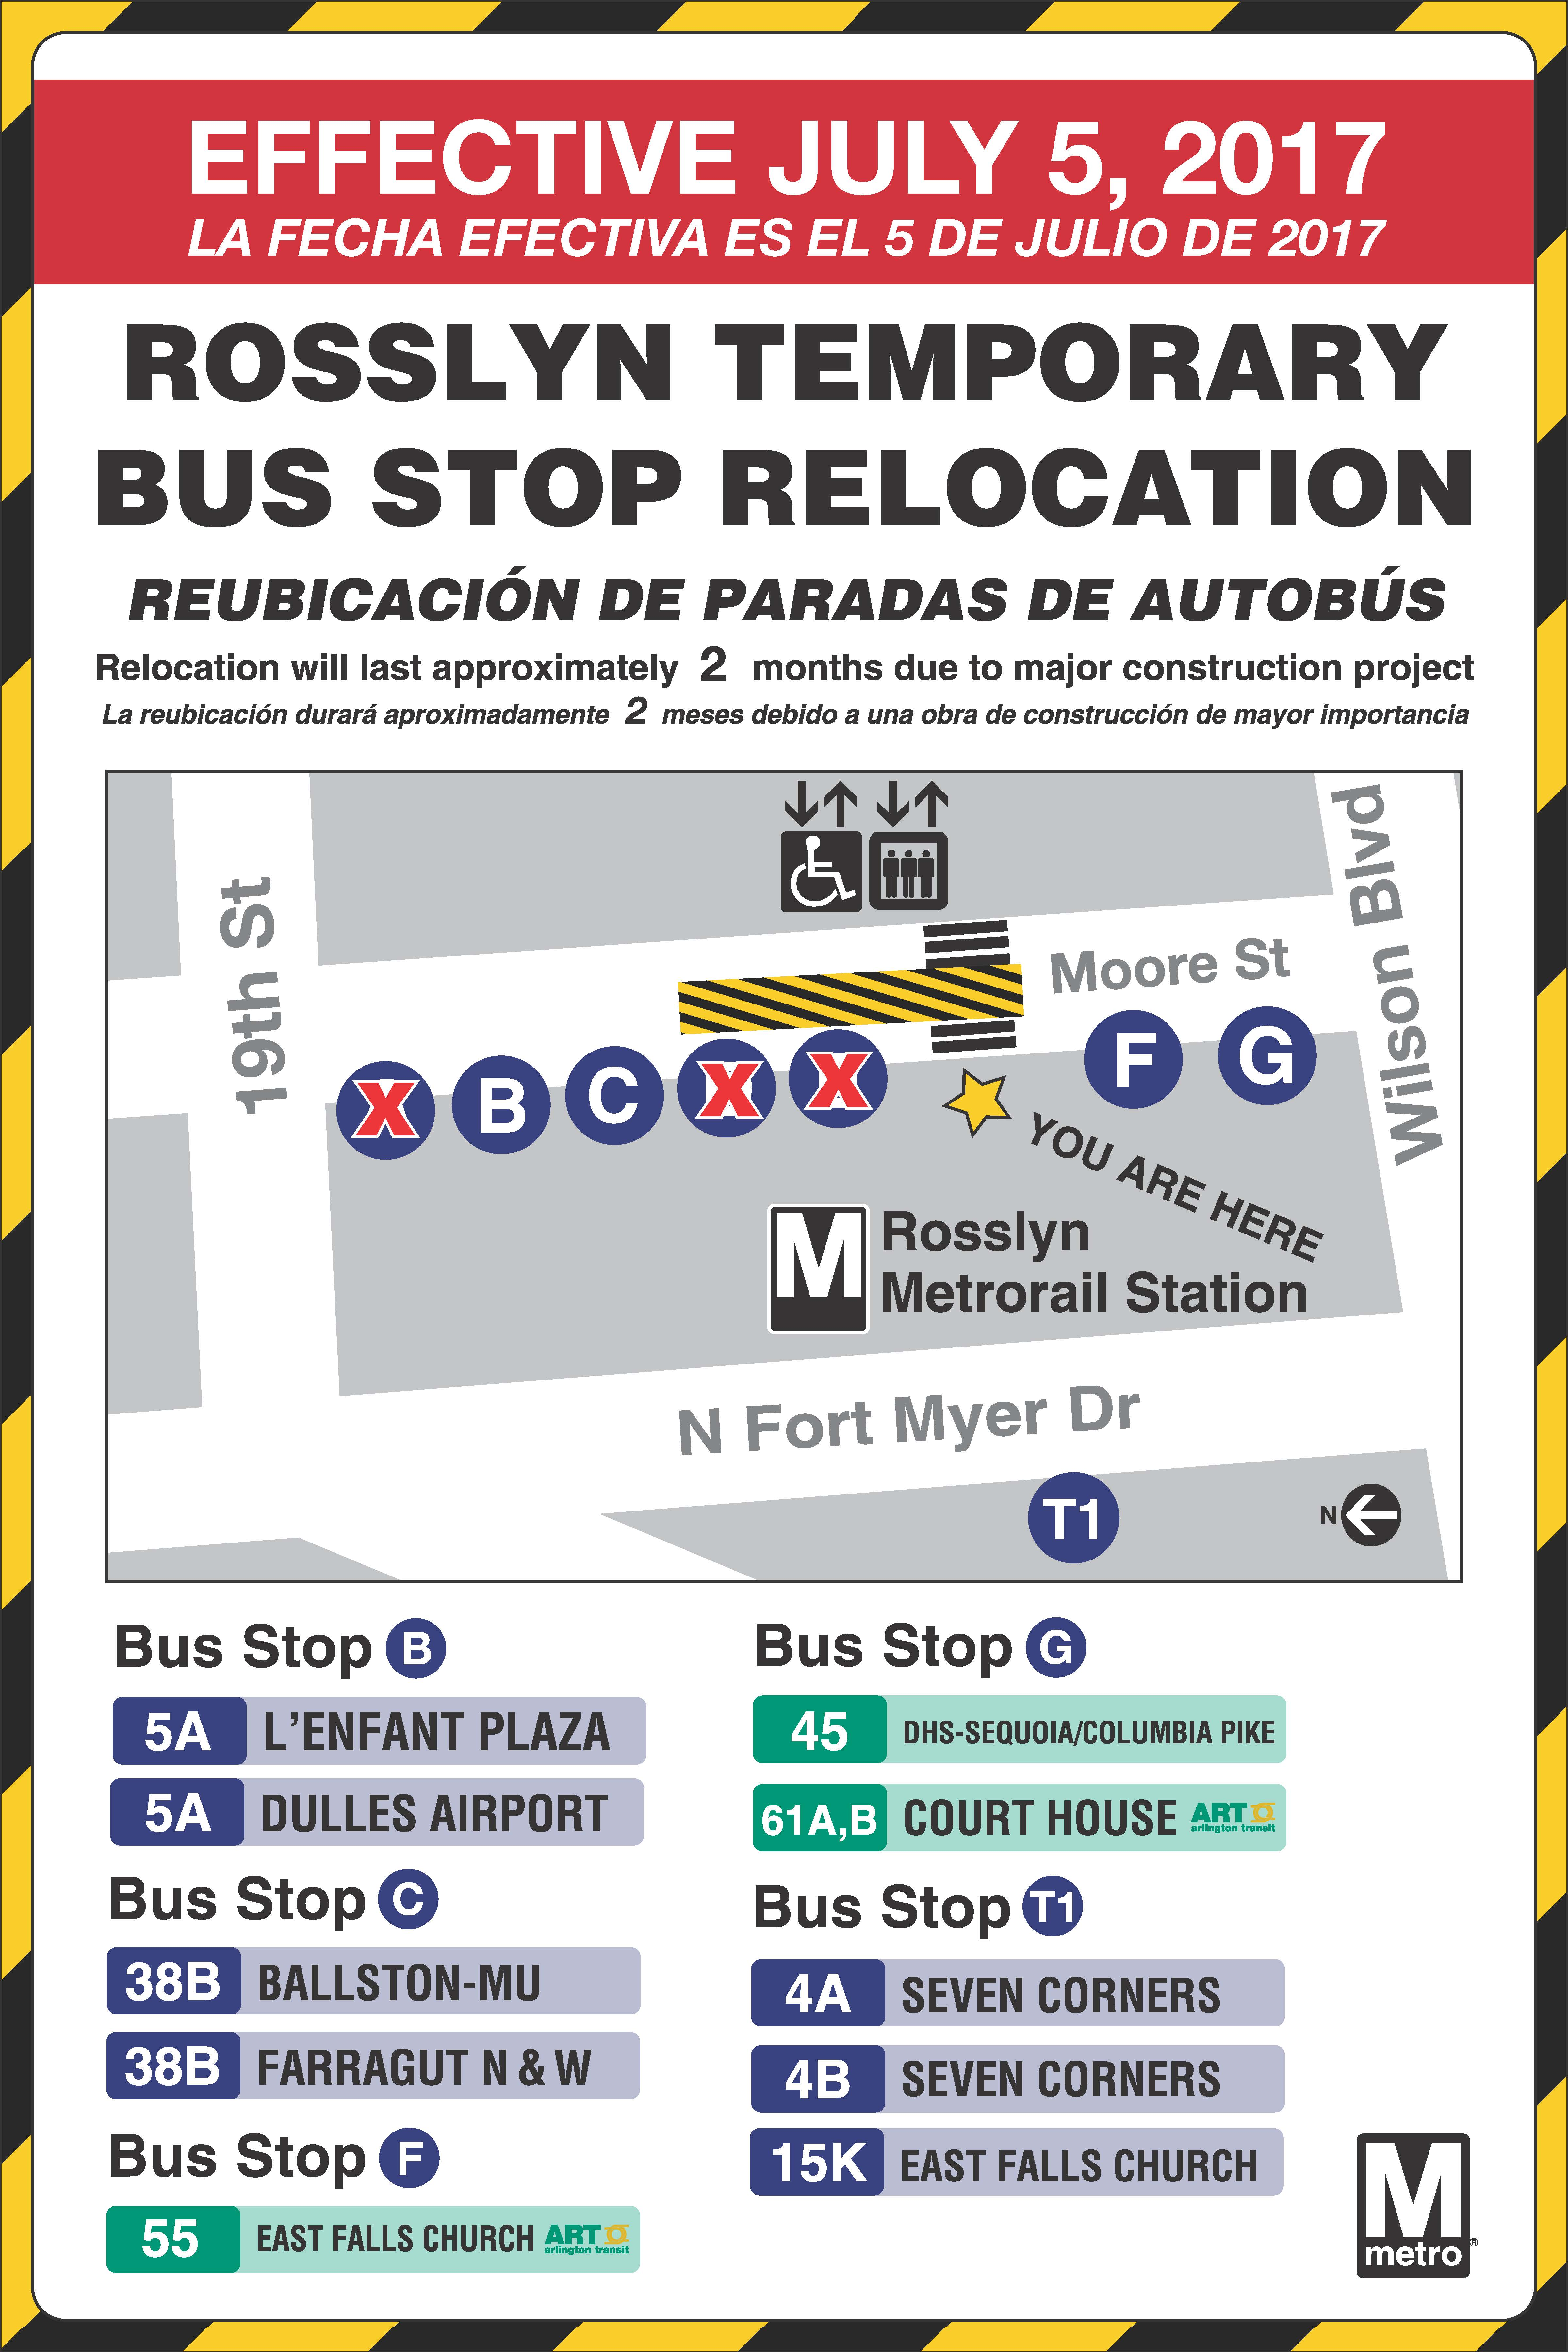 Rosslyn Bus Bays Relocating July 5